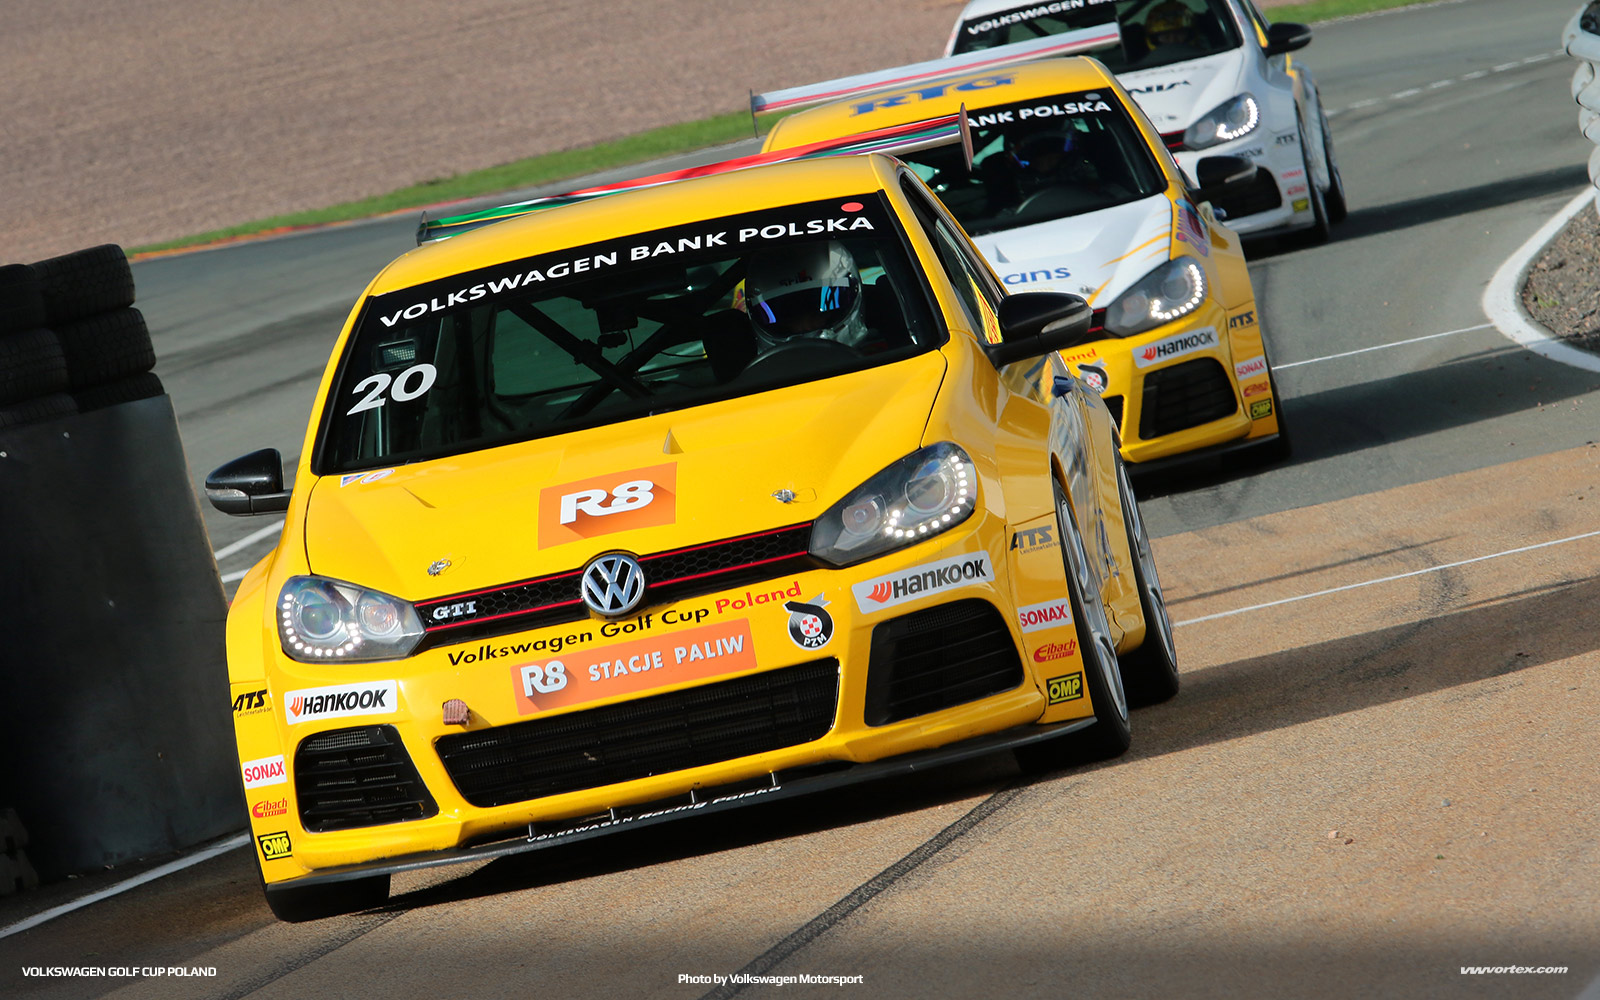 VW-GOLF-CUP-POLAND